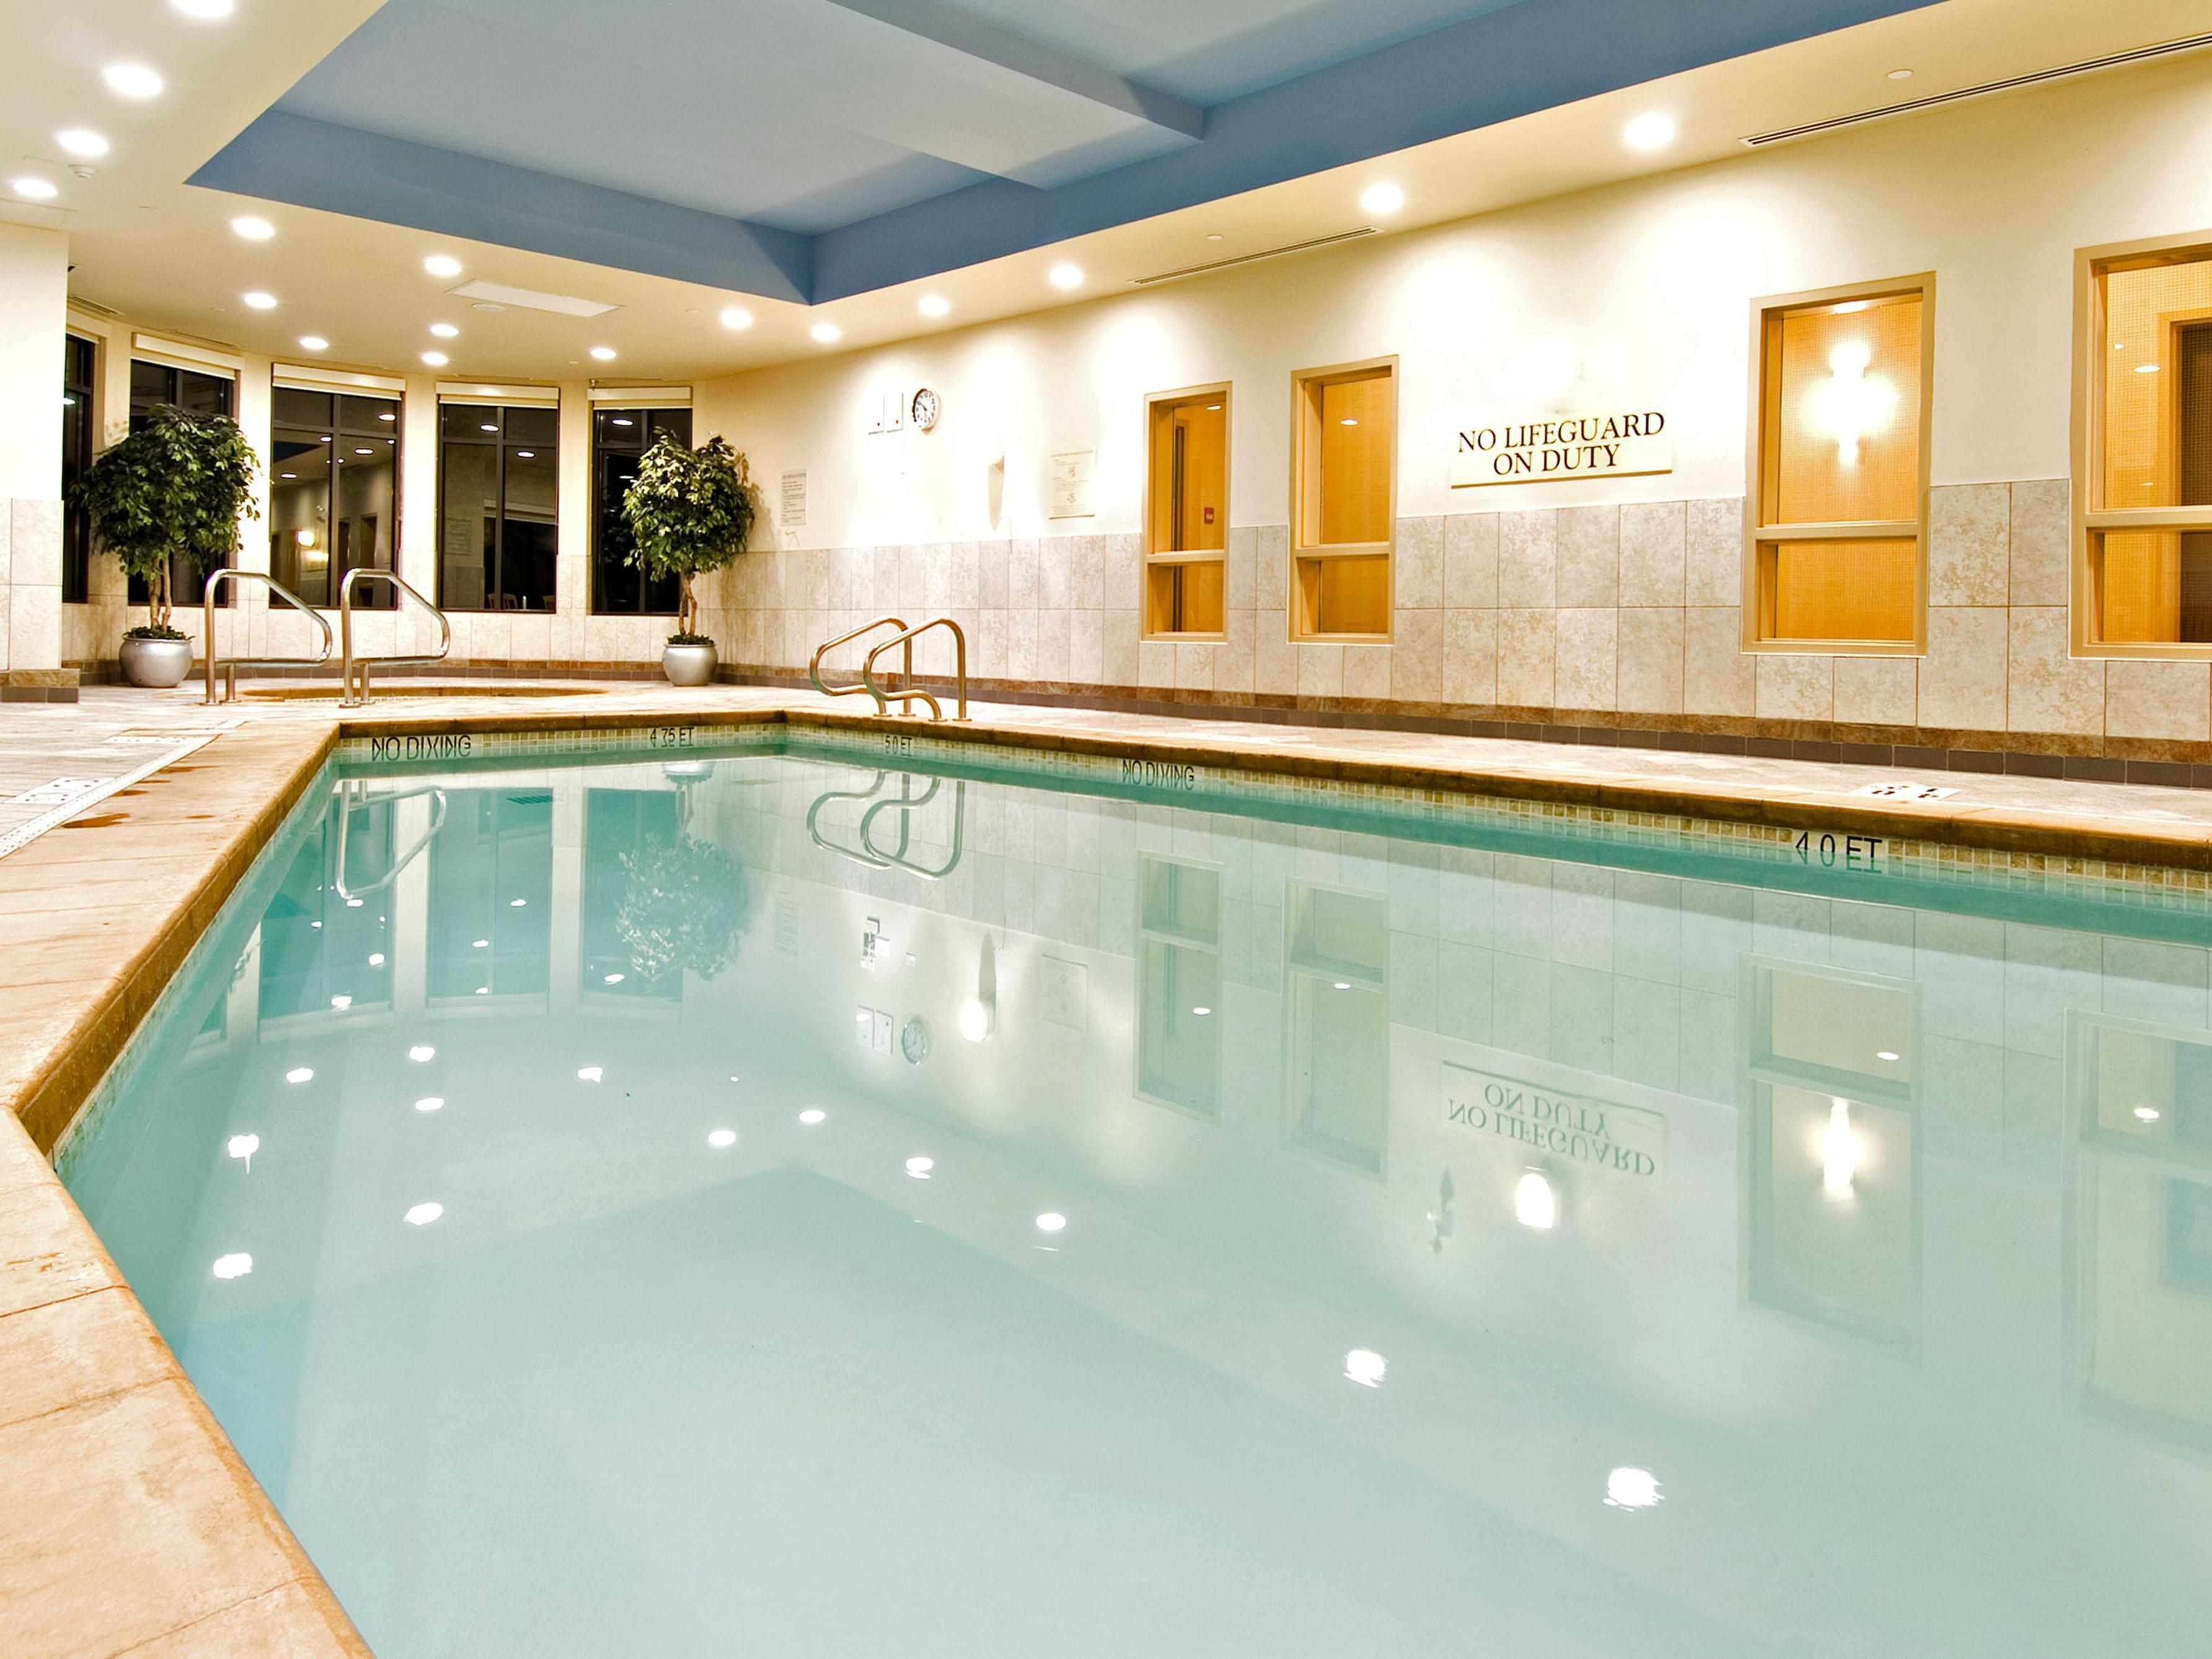 Heated Indoor Pool (Please note the pool closes at 10:30 pm daily)